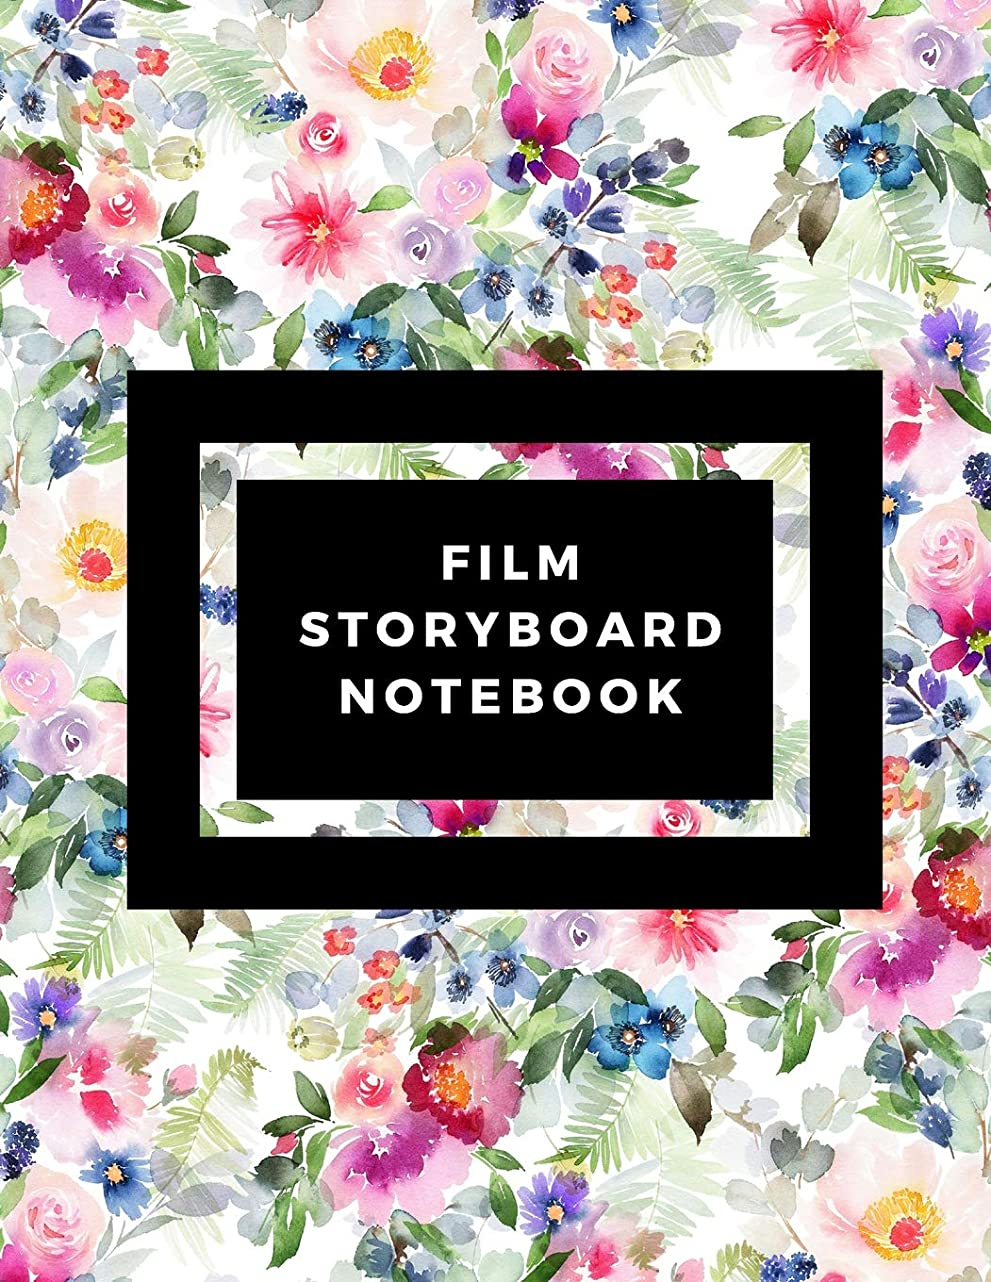 昨日追放なかなかFilm storyboard notebook: Film Notebook| Clapperboard and Frame Sketchbook Template| Panel Pages for Storytelling| Story Drawing & 4 Frames Per Page  Layouts For Professional, Film Makers, Video Makers, Animators & Advertisers. Paperback